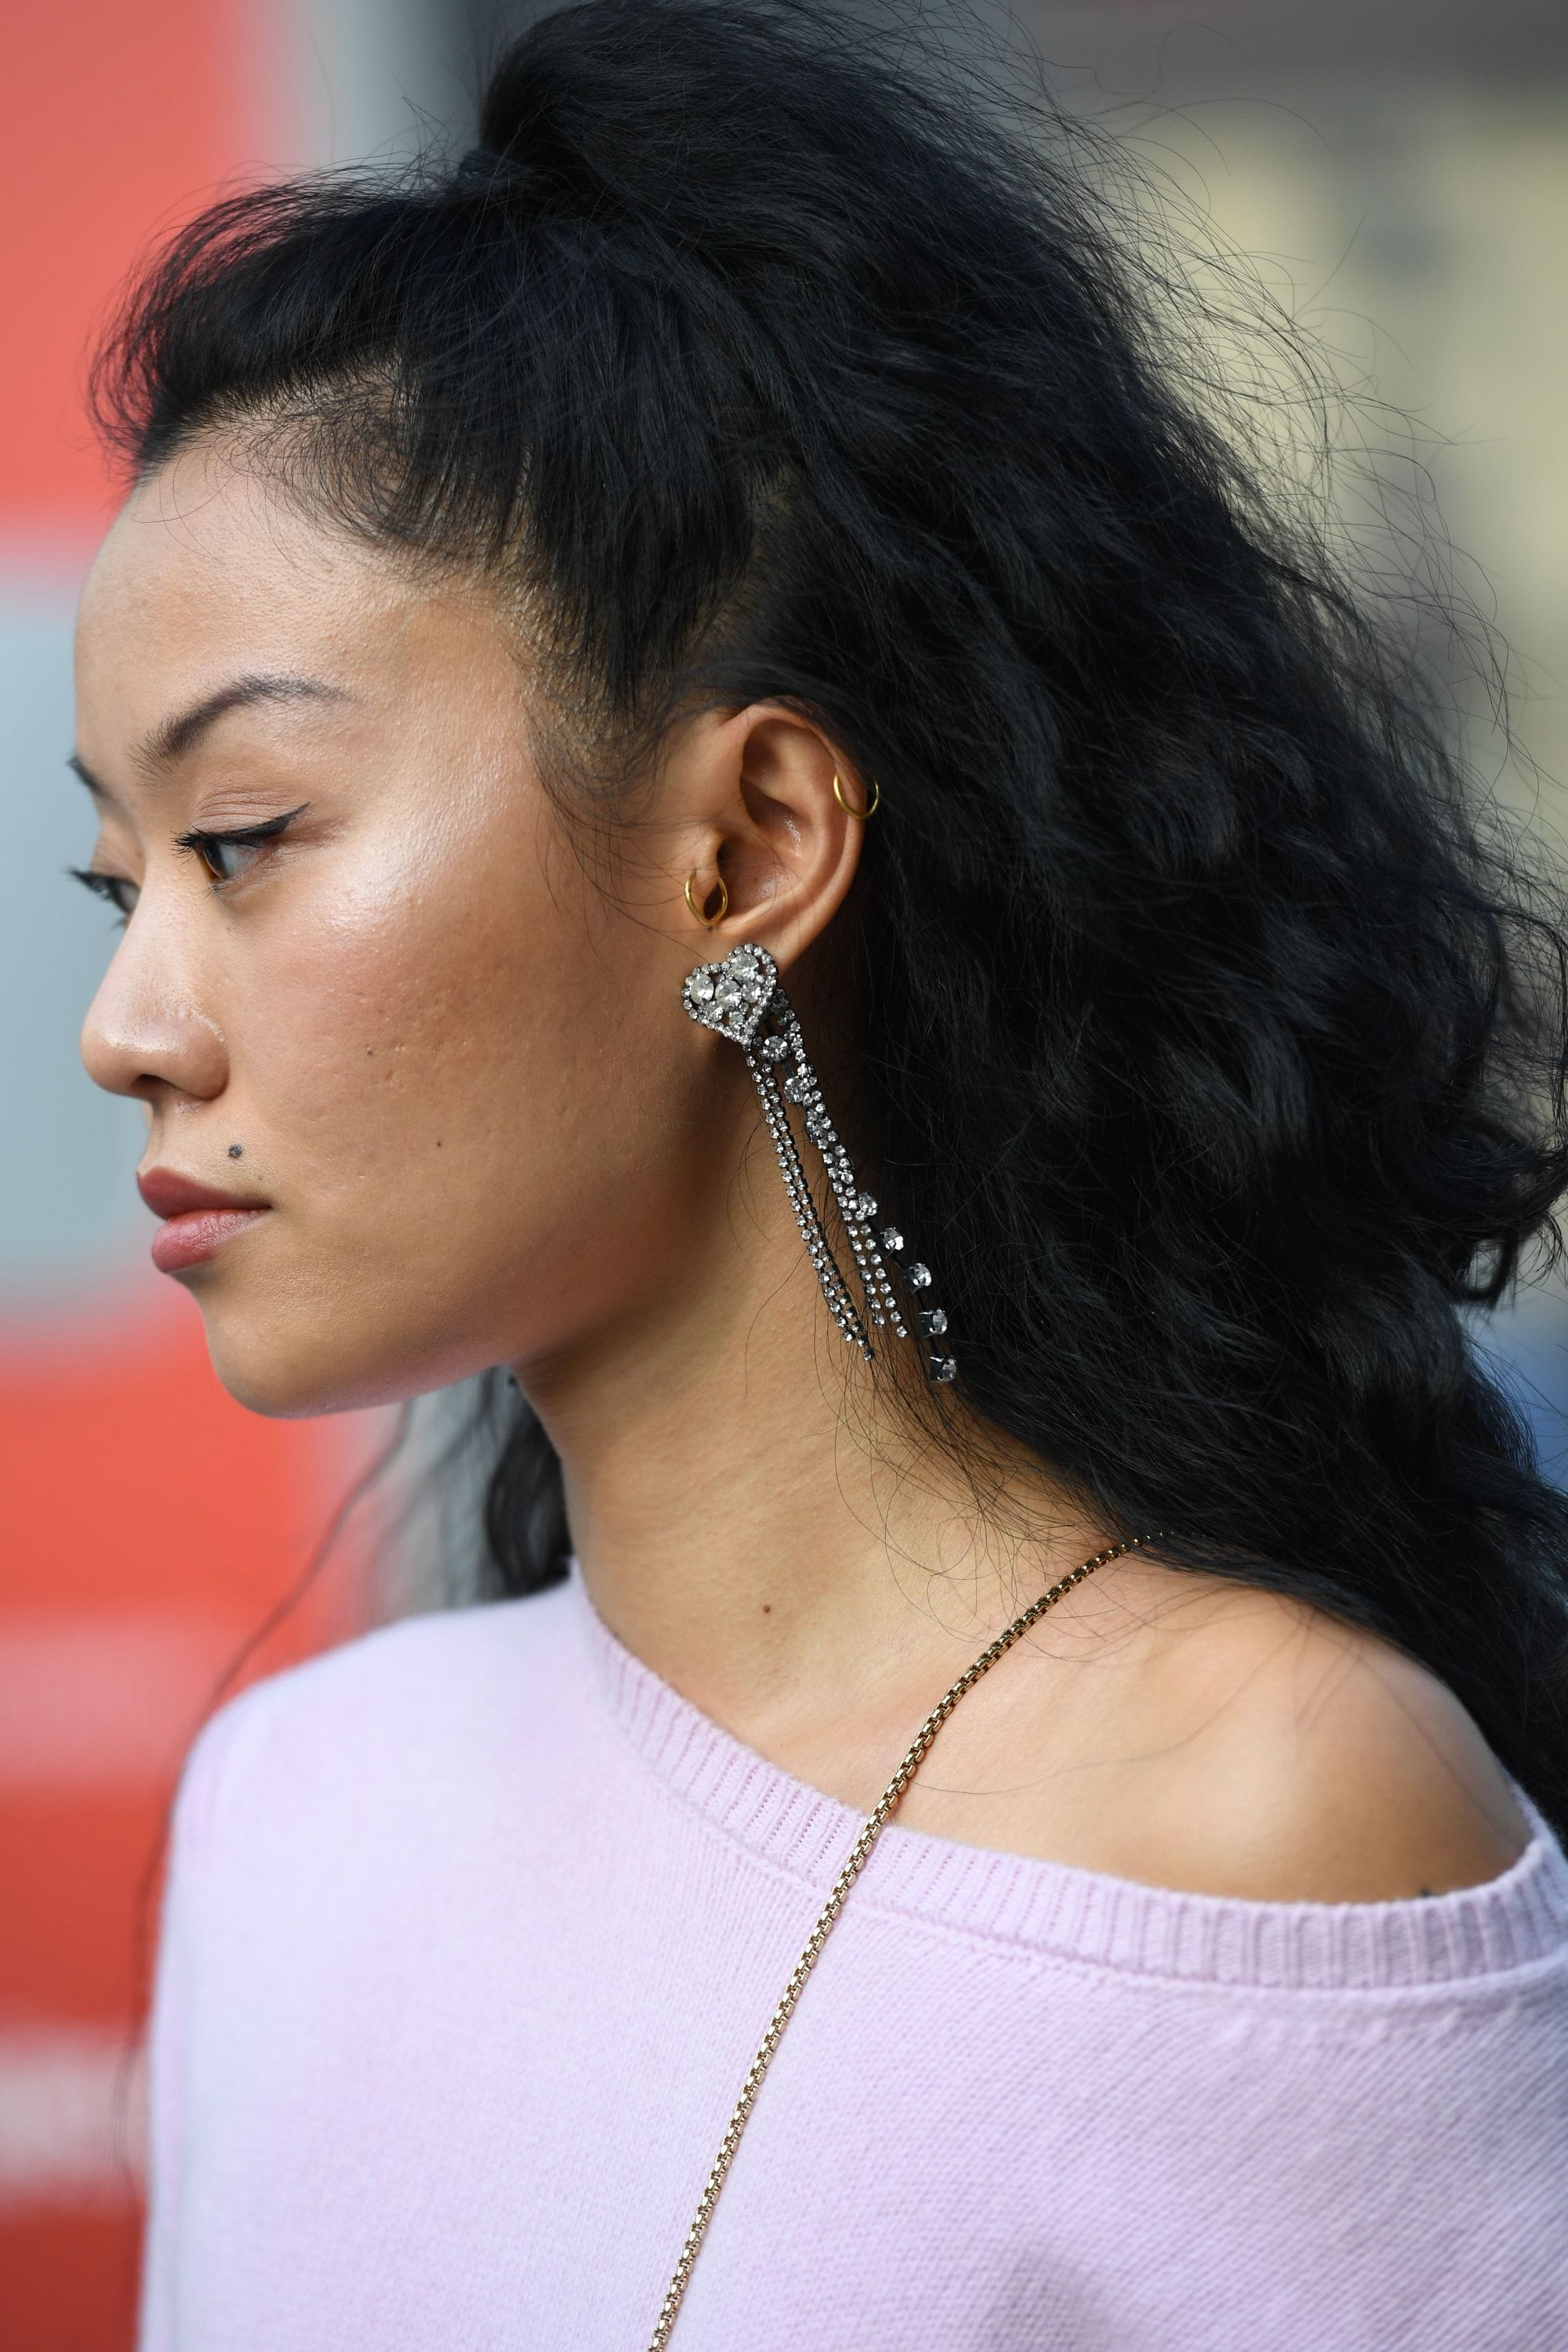 Long curly hair: Close up side shot of a woman with long dark brown curly hair styled into a half-up, half-down ponytail, wearing lilac jumper with drop earrings on the street